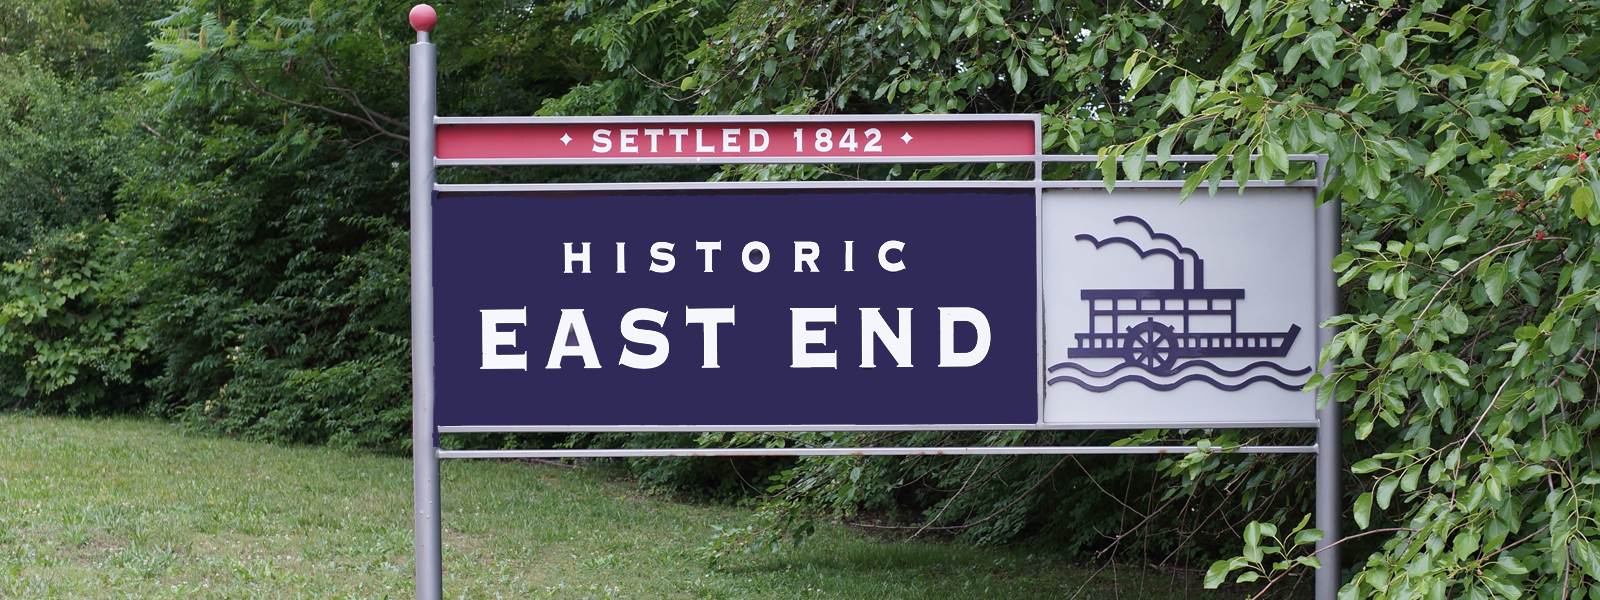 The East End Welcomes You